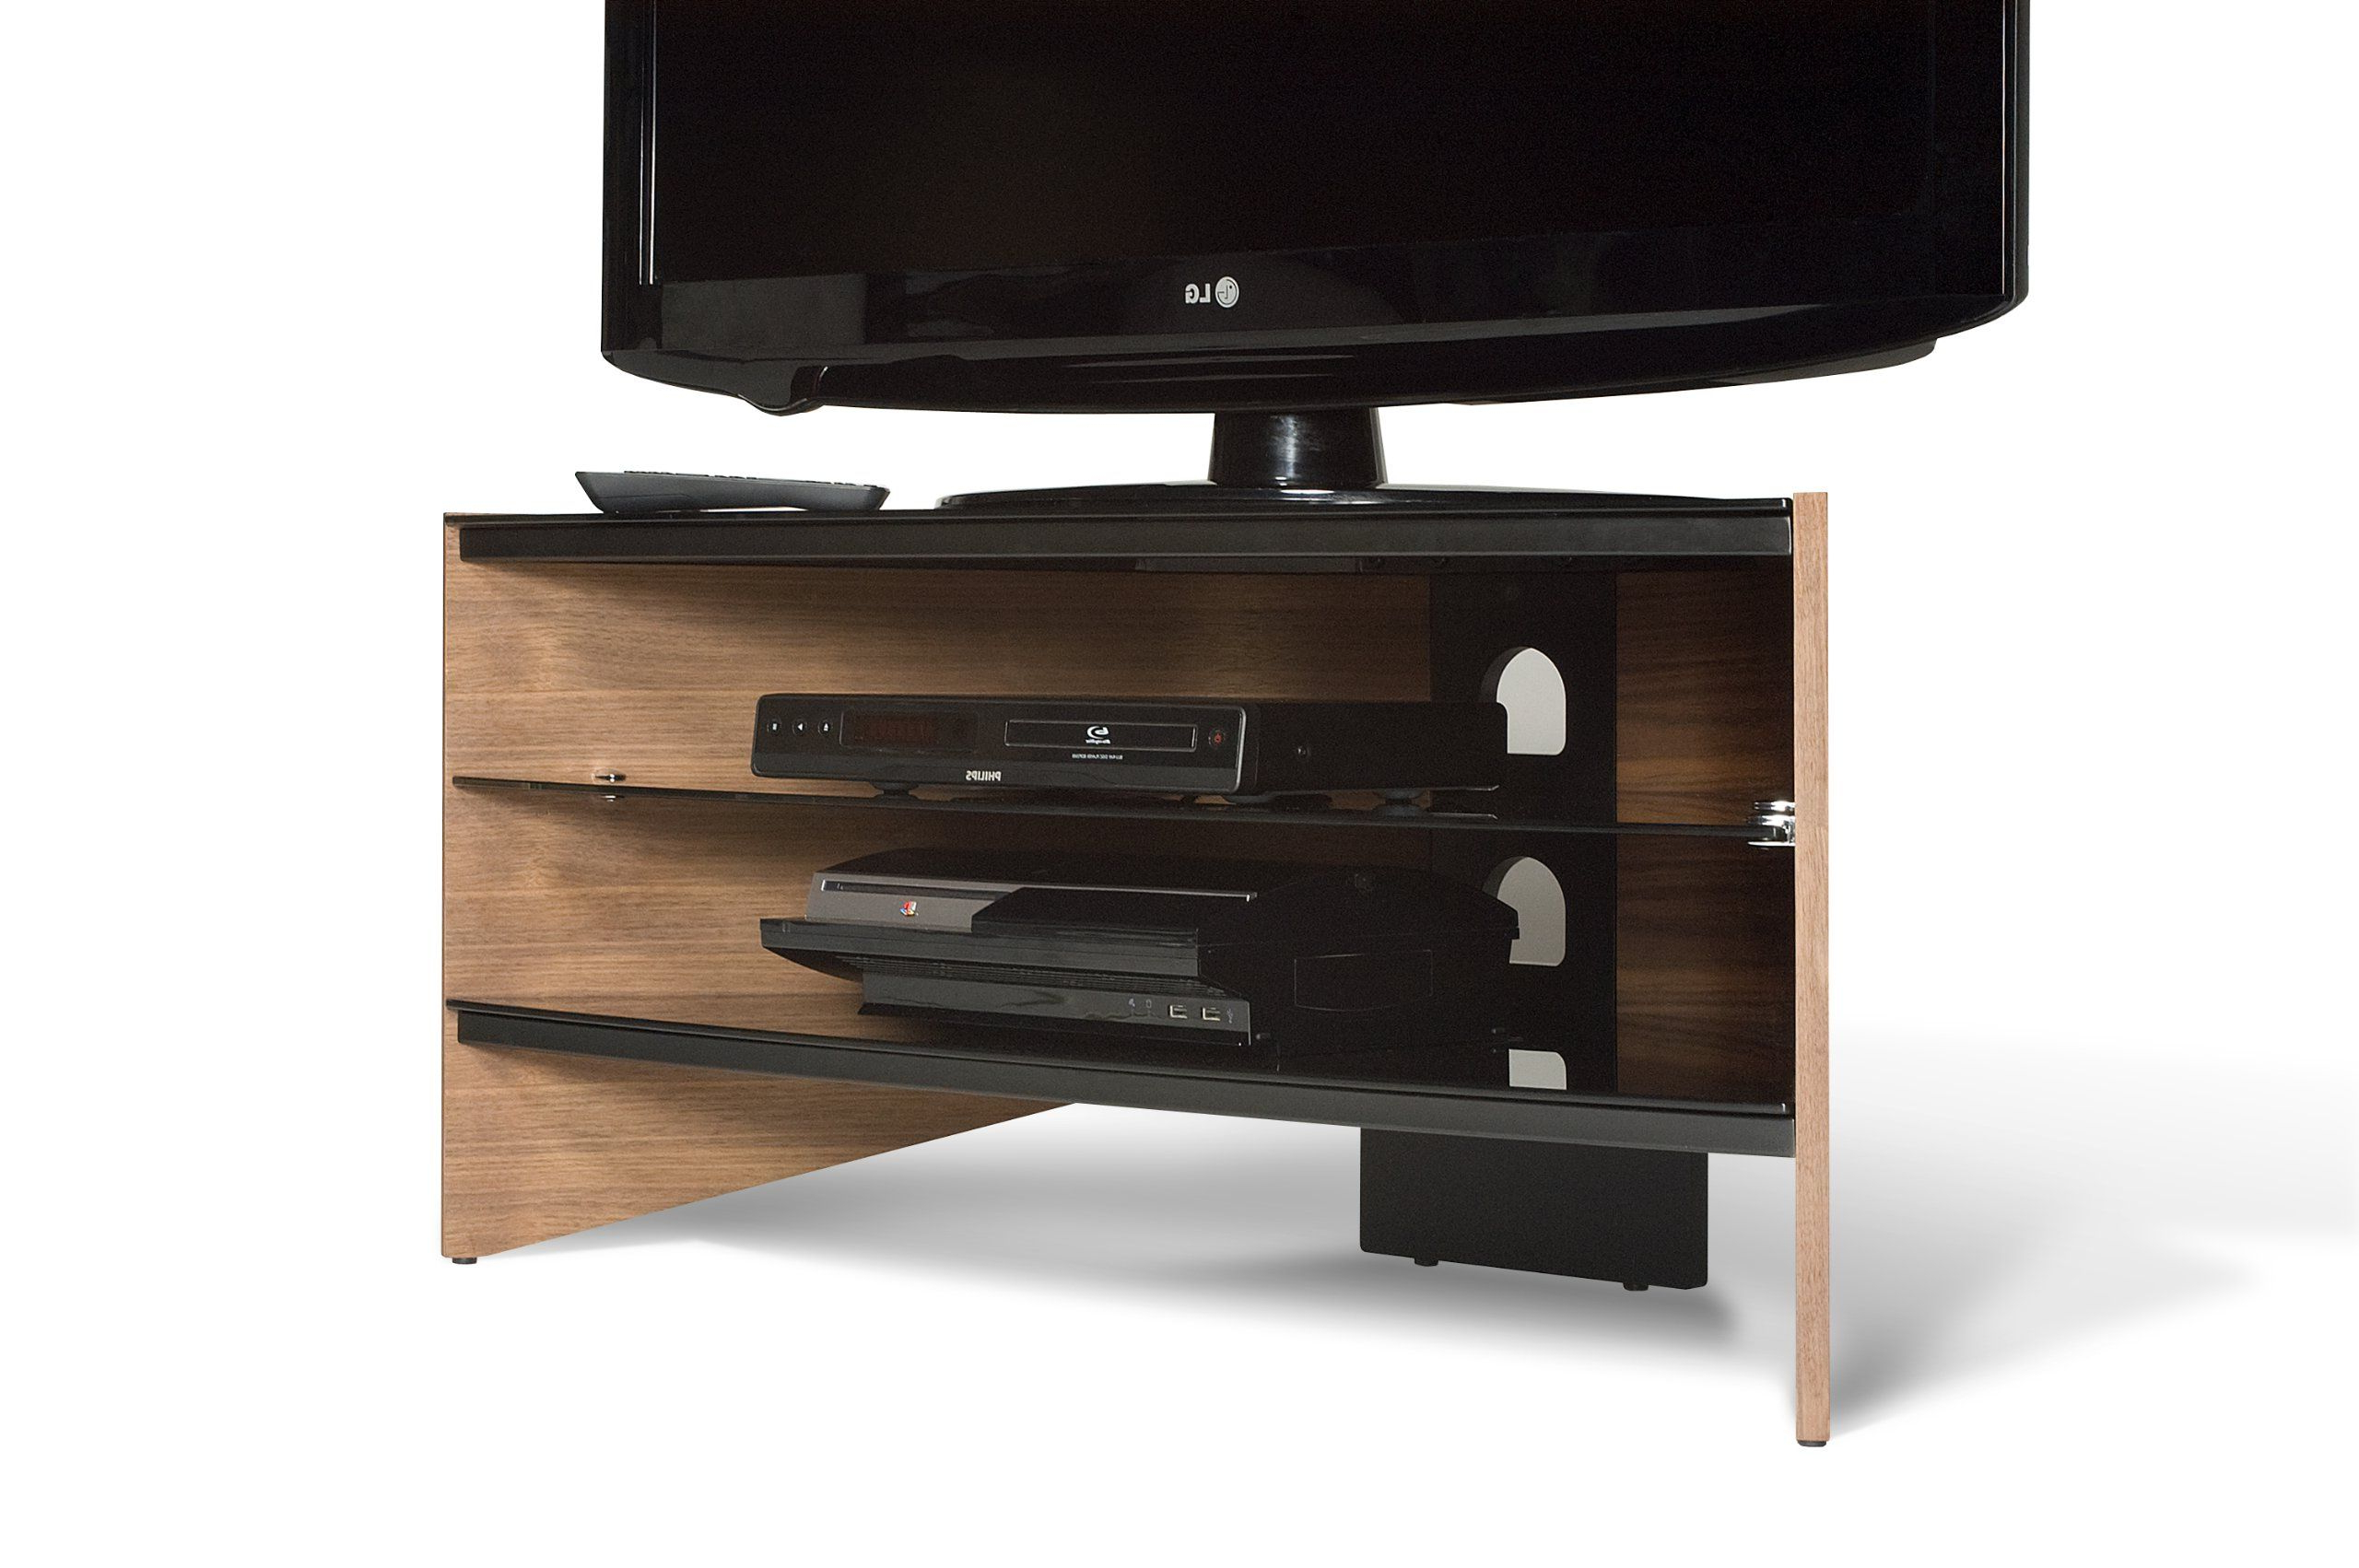 Techlink Riva Rv100w Tv Stand With Black Glass Shelves Suitable For With Regard To Most Recent Techlink Riva Tv Stands (View 5 of 20)